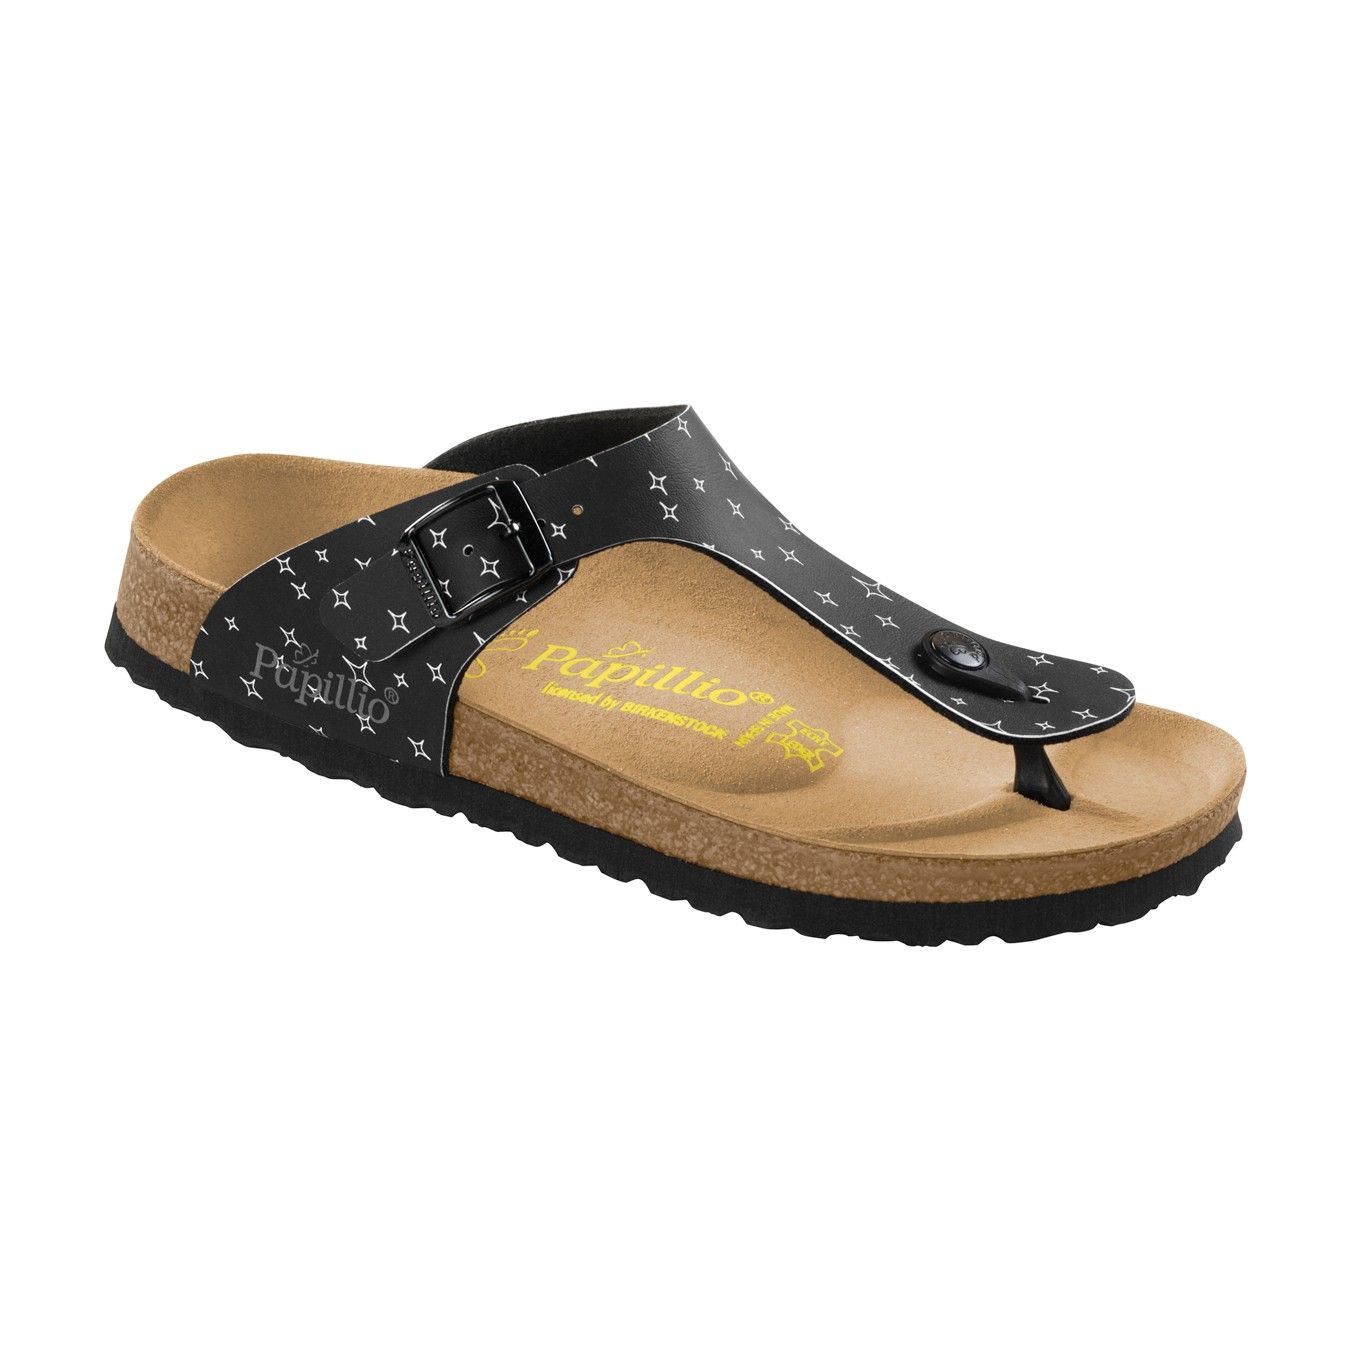 #Ch9XnVgY0Y Gizeh Black Birko-Flor Patent Womens Leather Sandals